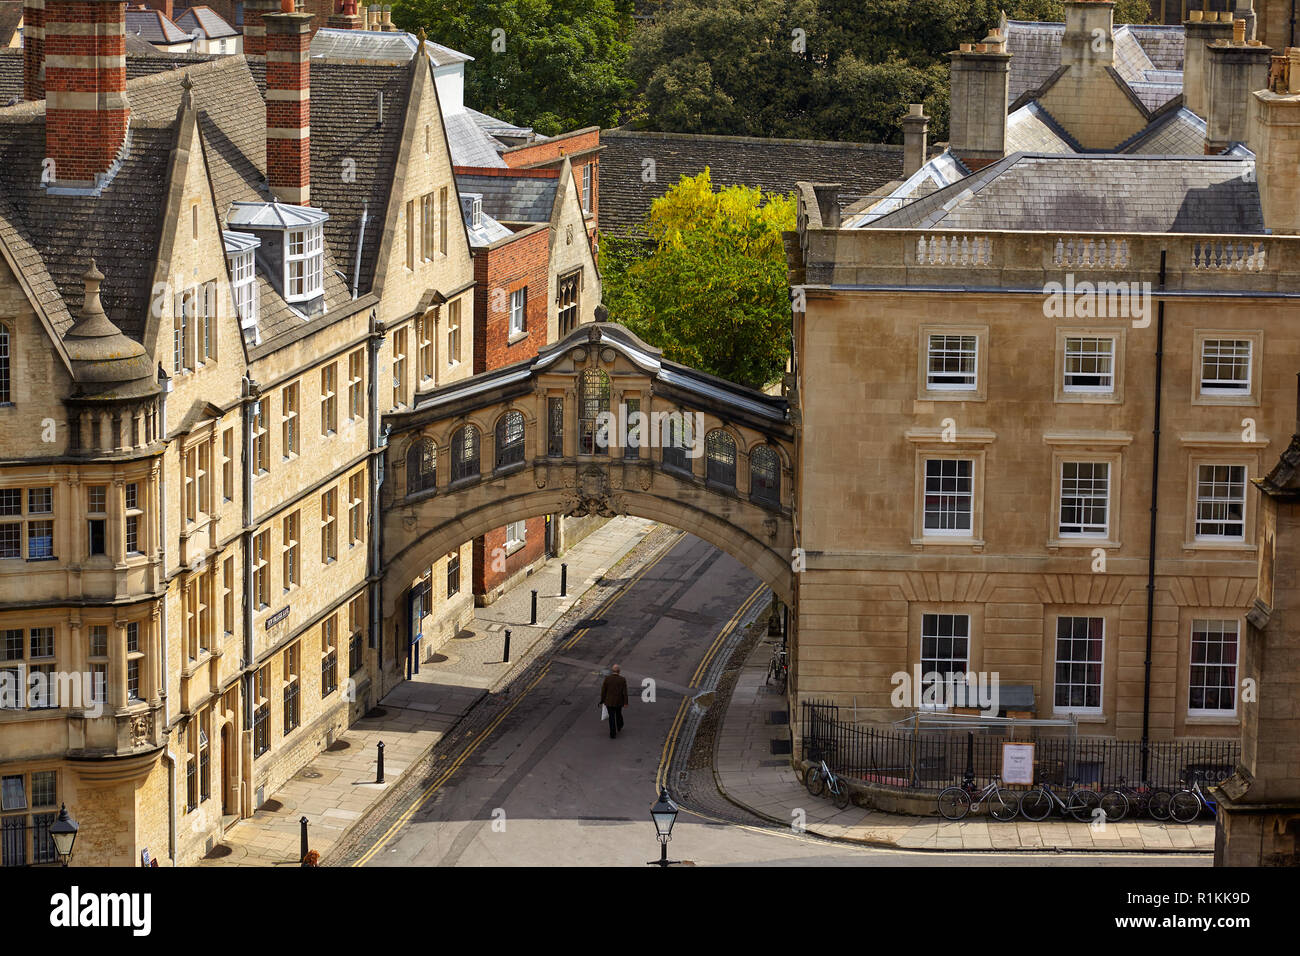 The Hertford bridge or the Bridge of Sighs  over the New college line as seen from the cupola of the Sheldonian Theatre. Oxford University. Oxford. En - Stock Image